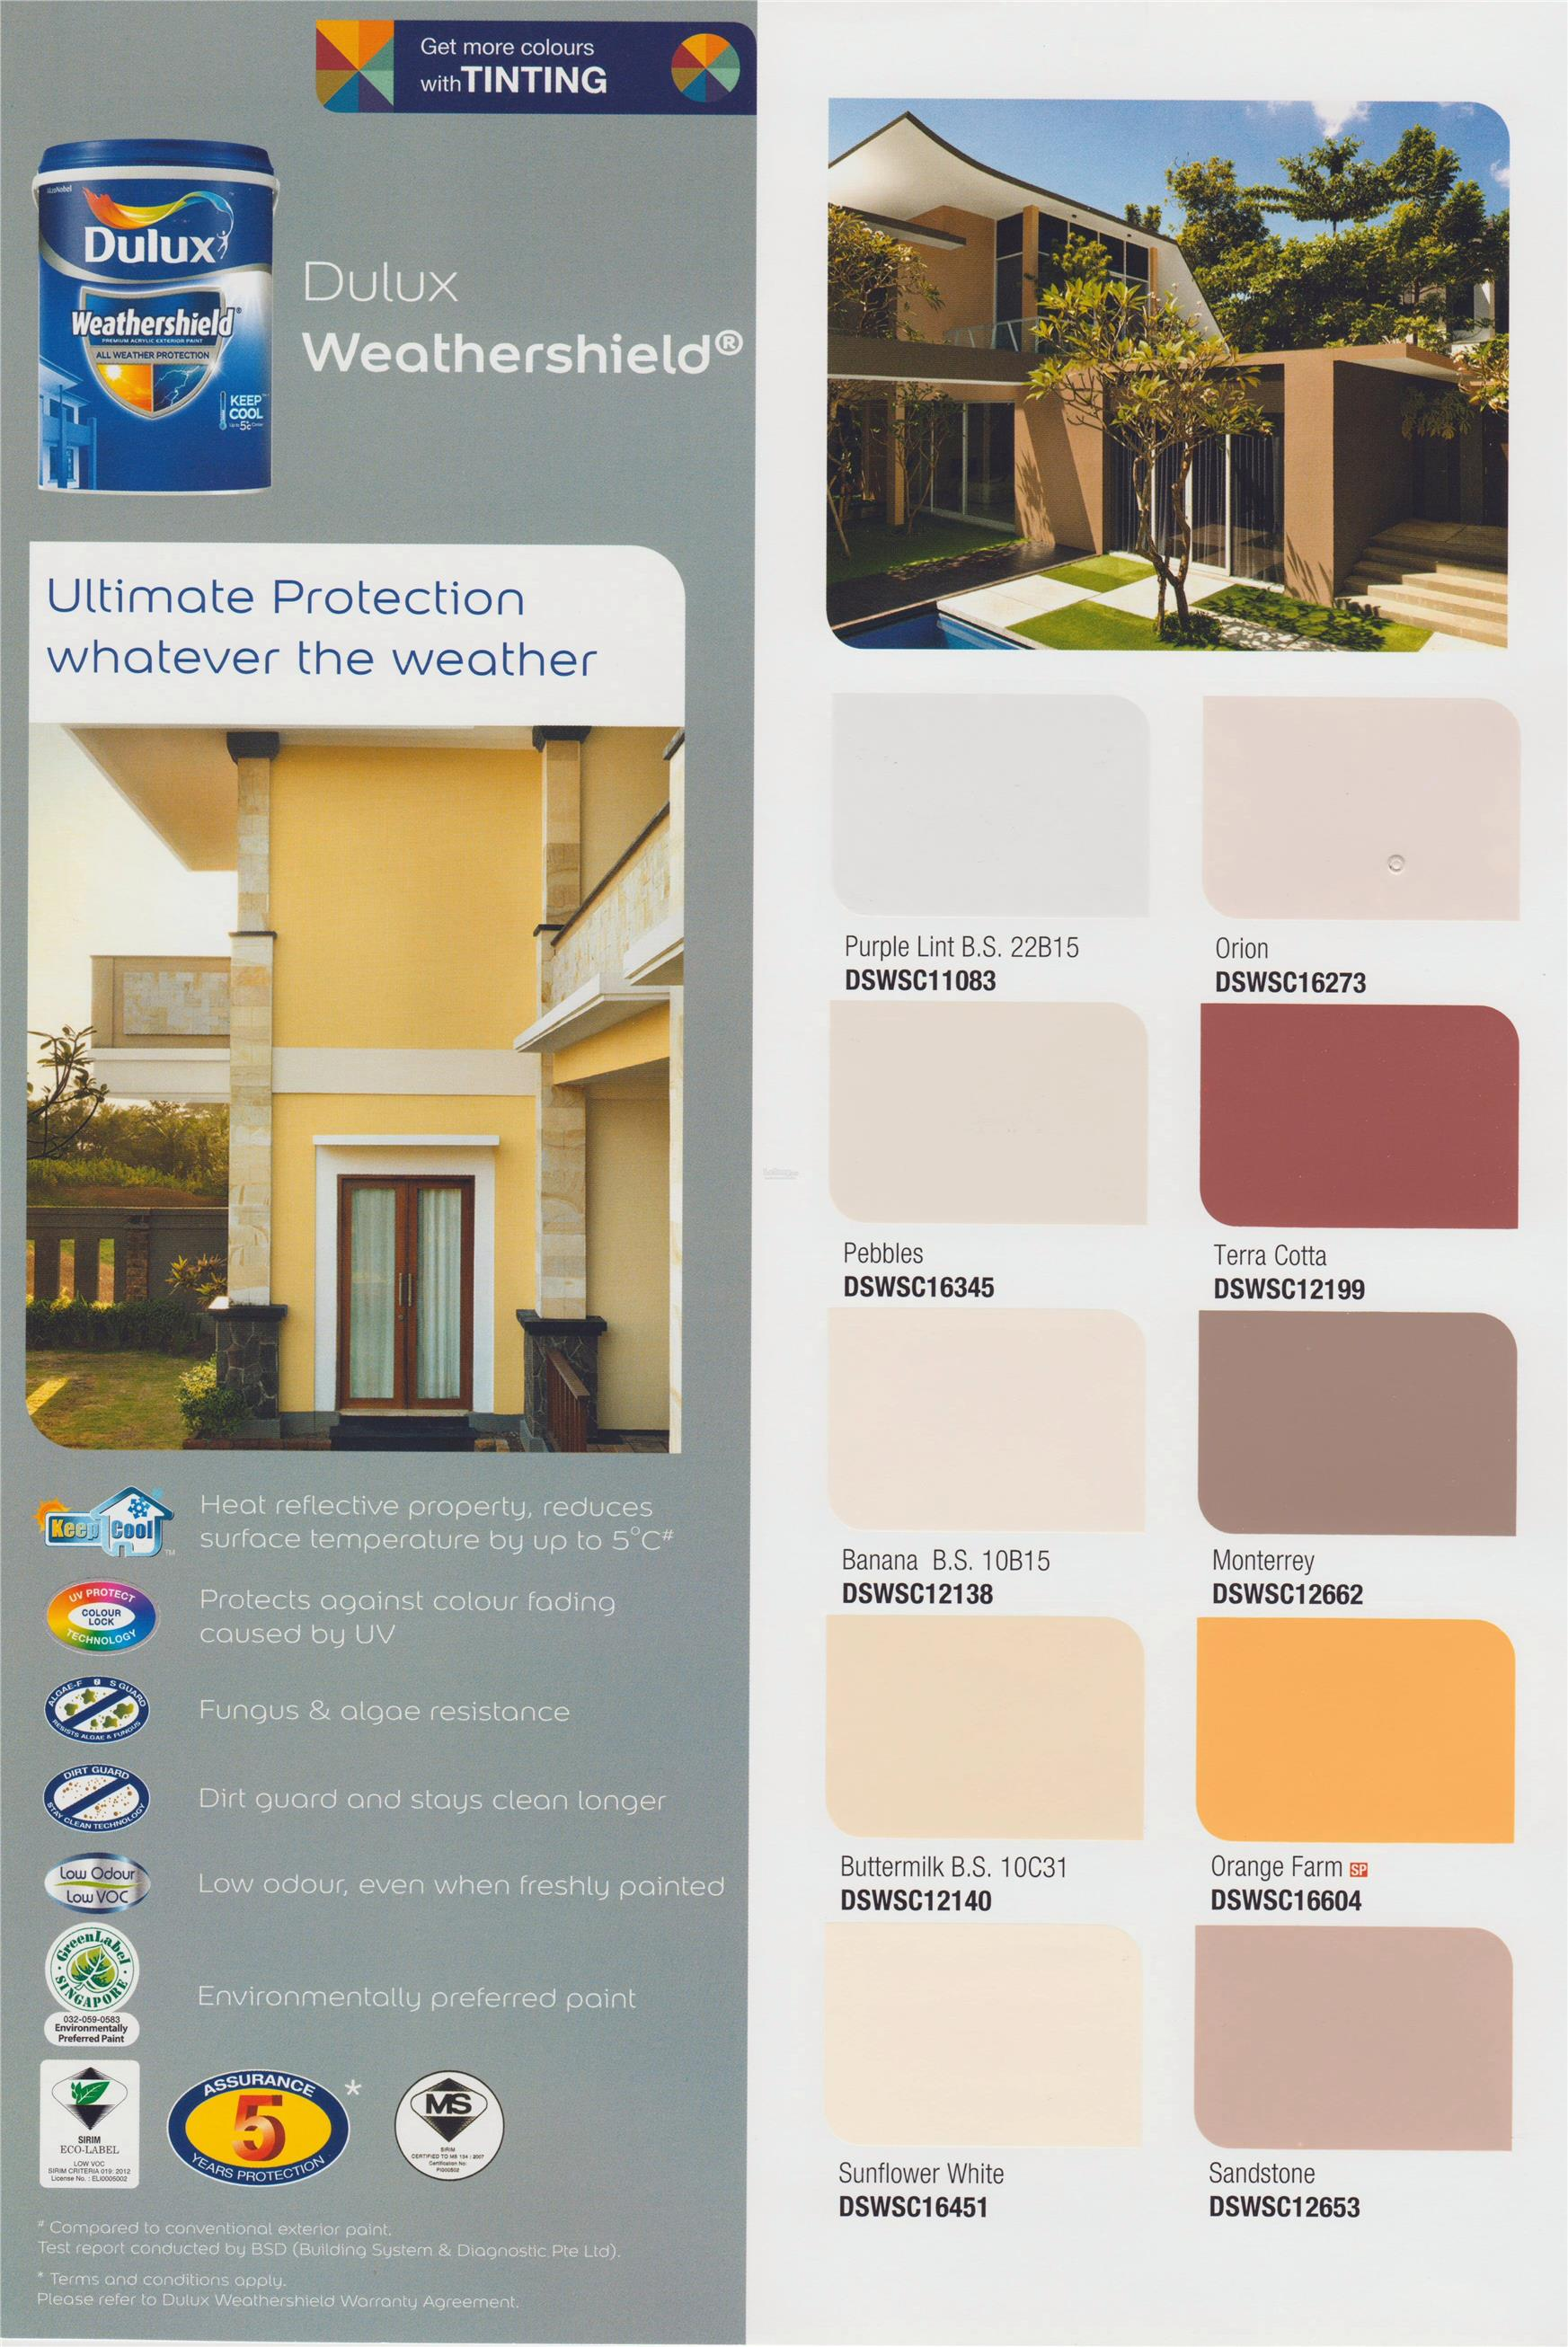 Dulux Paint Weathershield 5L Exterior Paint